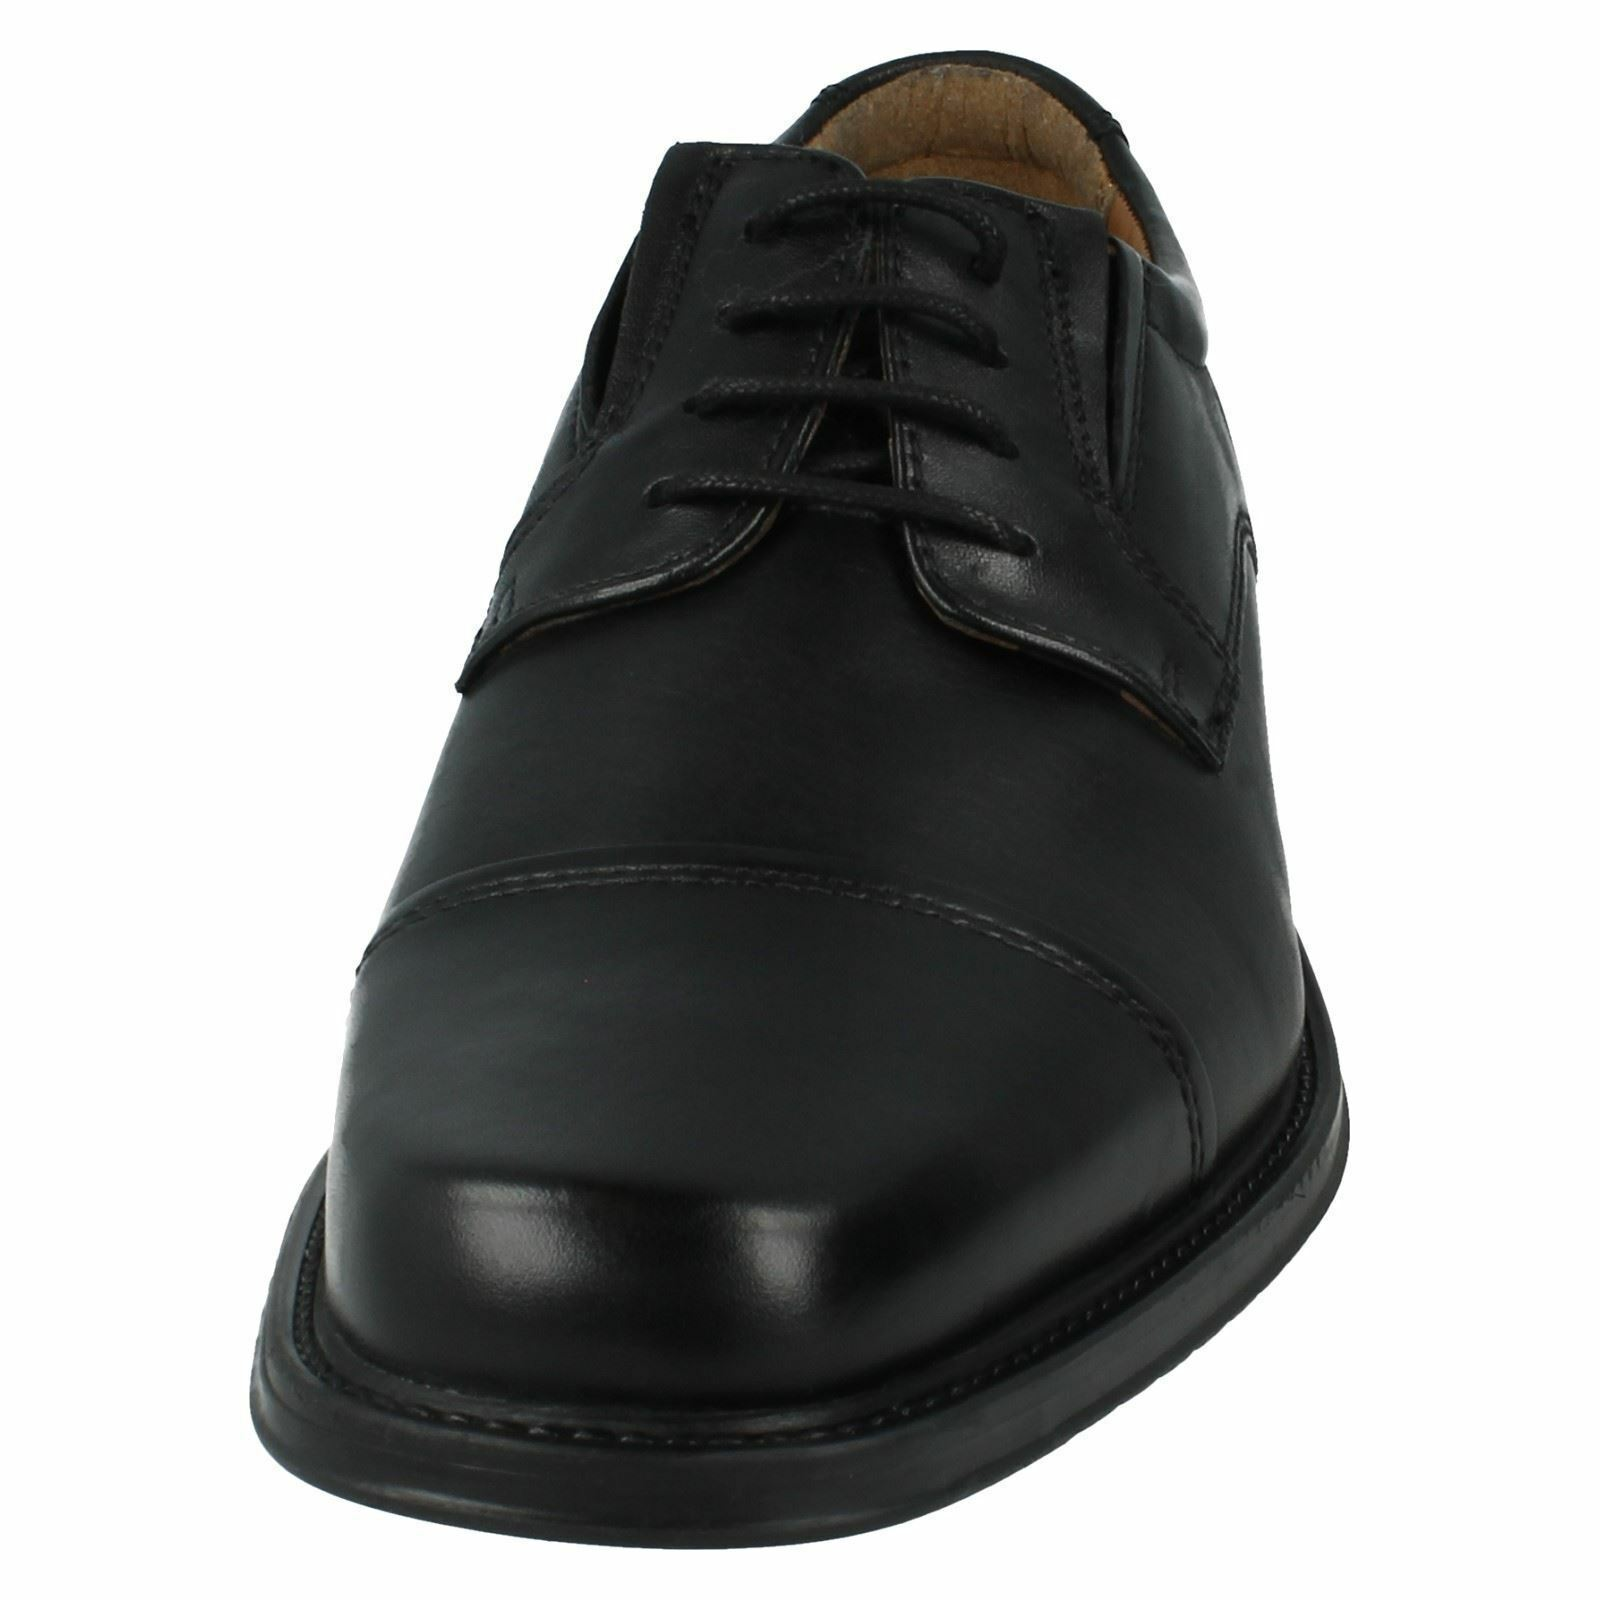 Herren CLARKS BLACK LEATHER DRIGGS LACE UP Schuhe STYLE DRIGGS LEATHER CAP 65e4f9